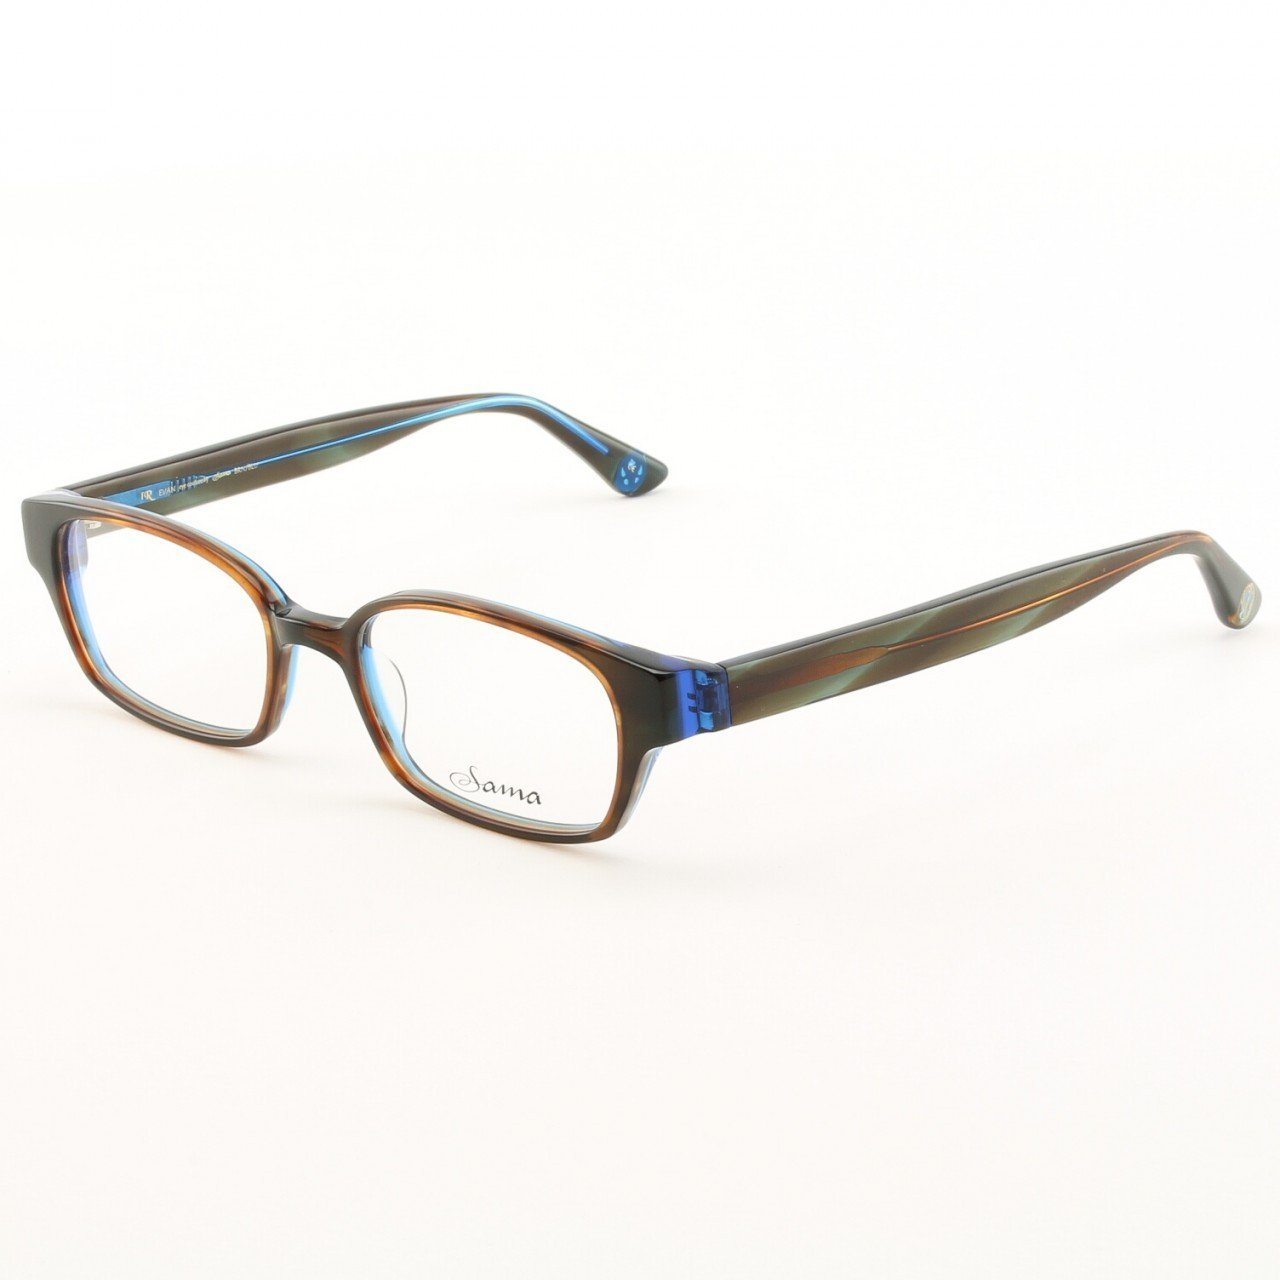 Loree Rodkin Evan Eyeglasses by Sama Col. Brown and Blue with Clear Lenses